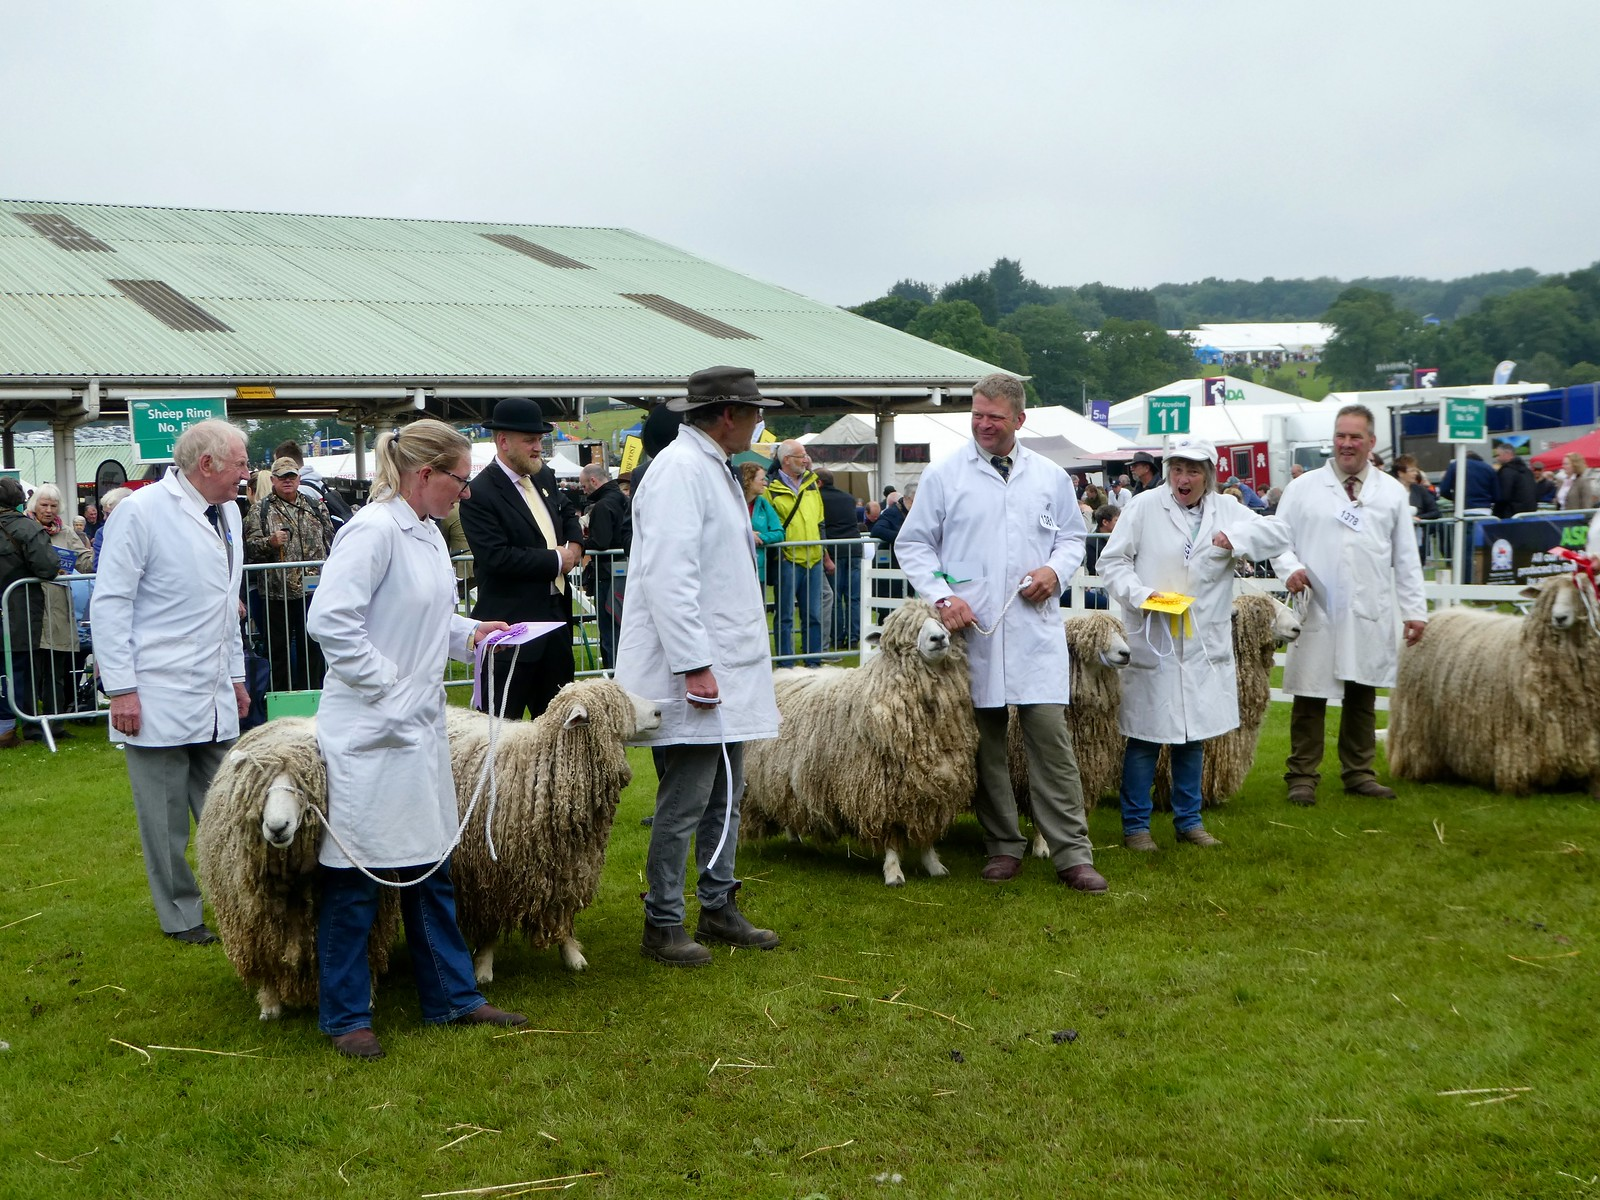 Sheep classes, Great Yorkshire Show, Harrogate